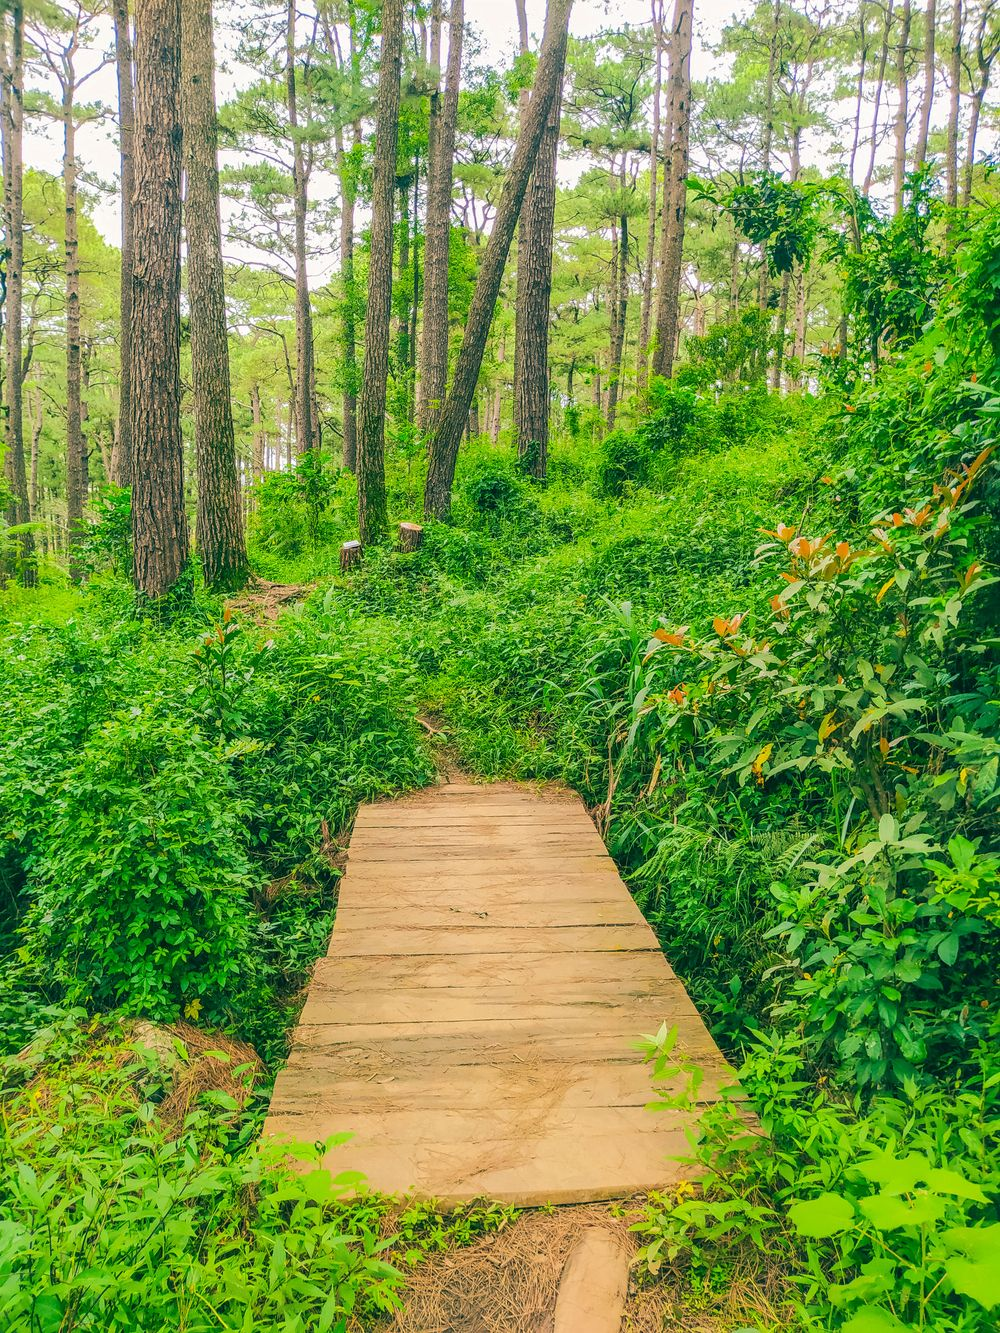 A wooden footbridge in the middle of a lush and verdant forest somewhere along the Yellow Trail